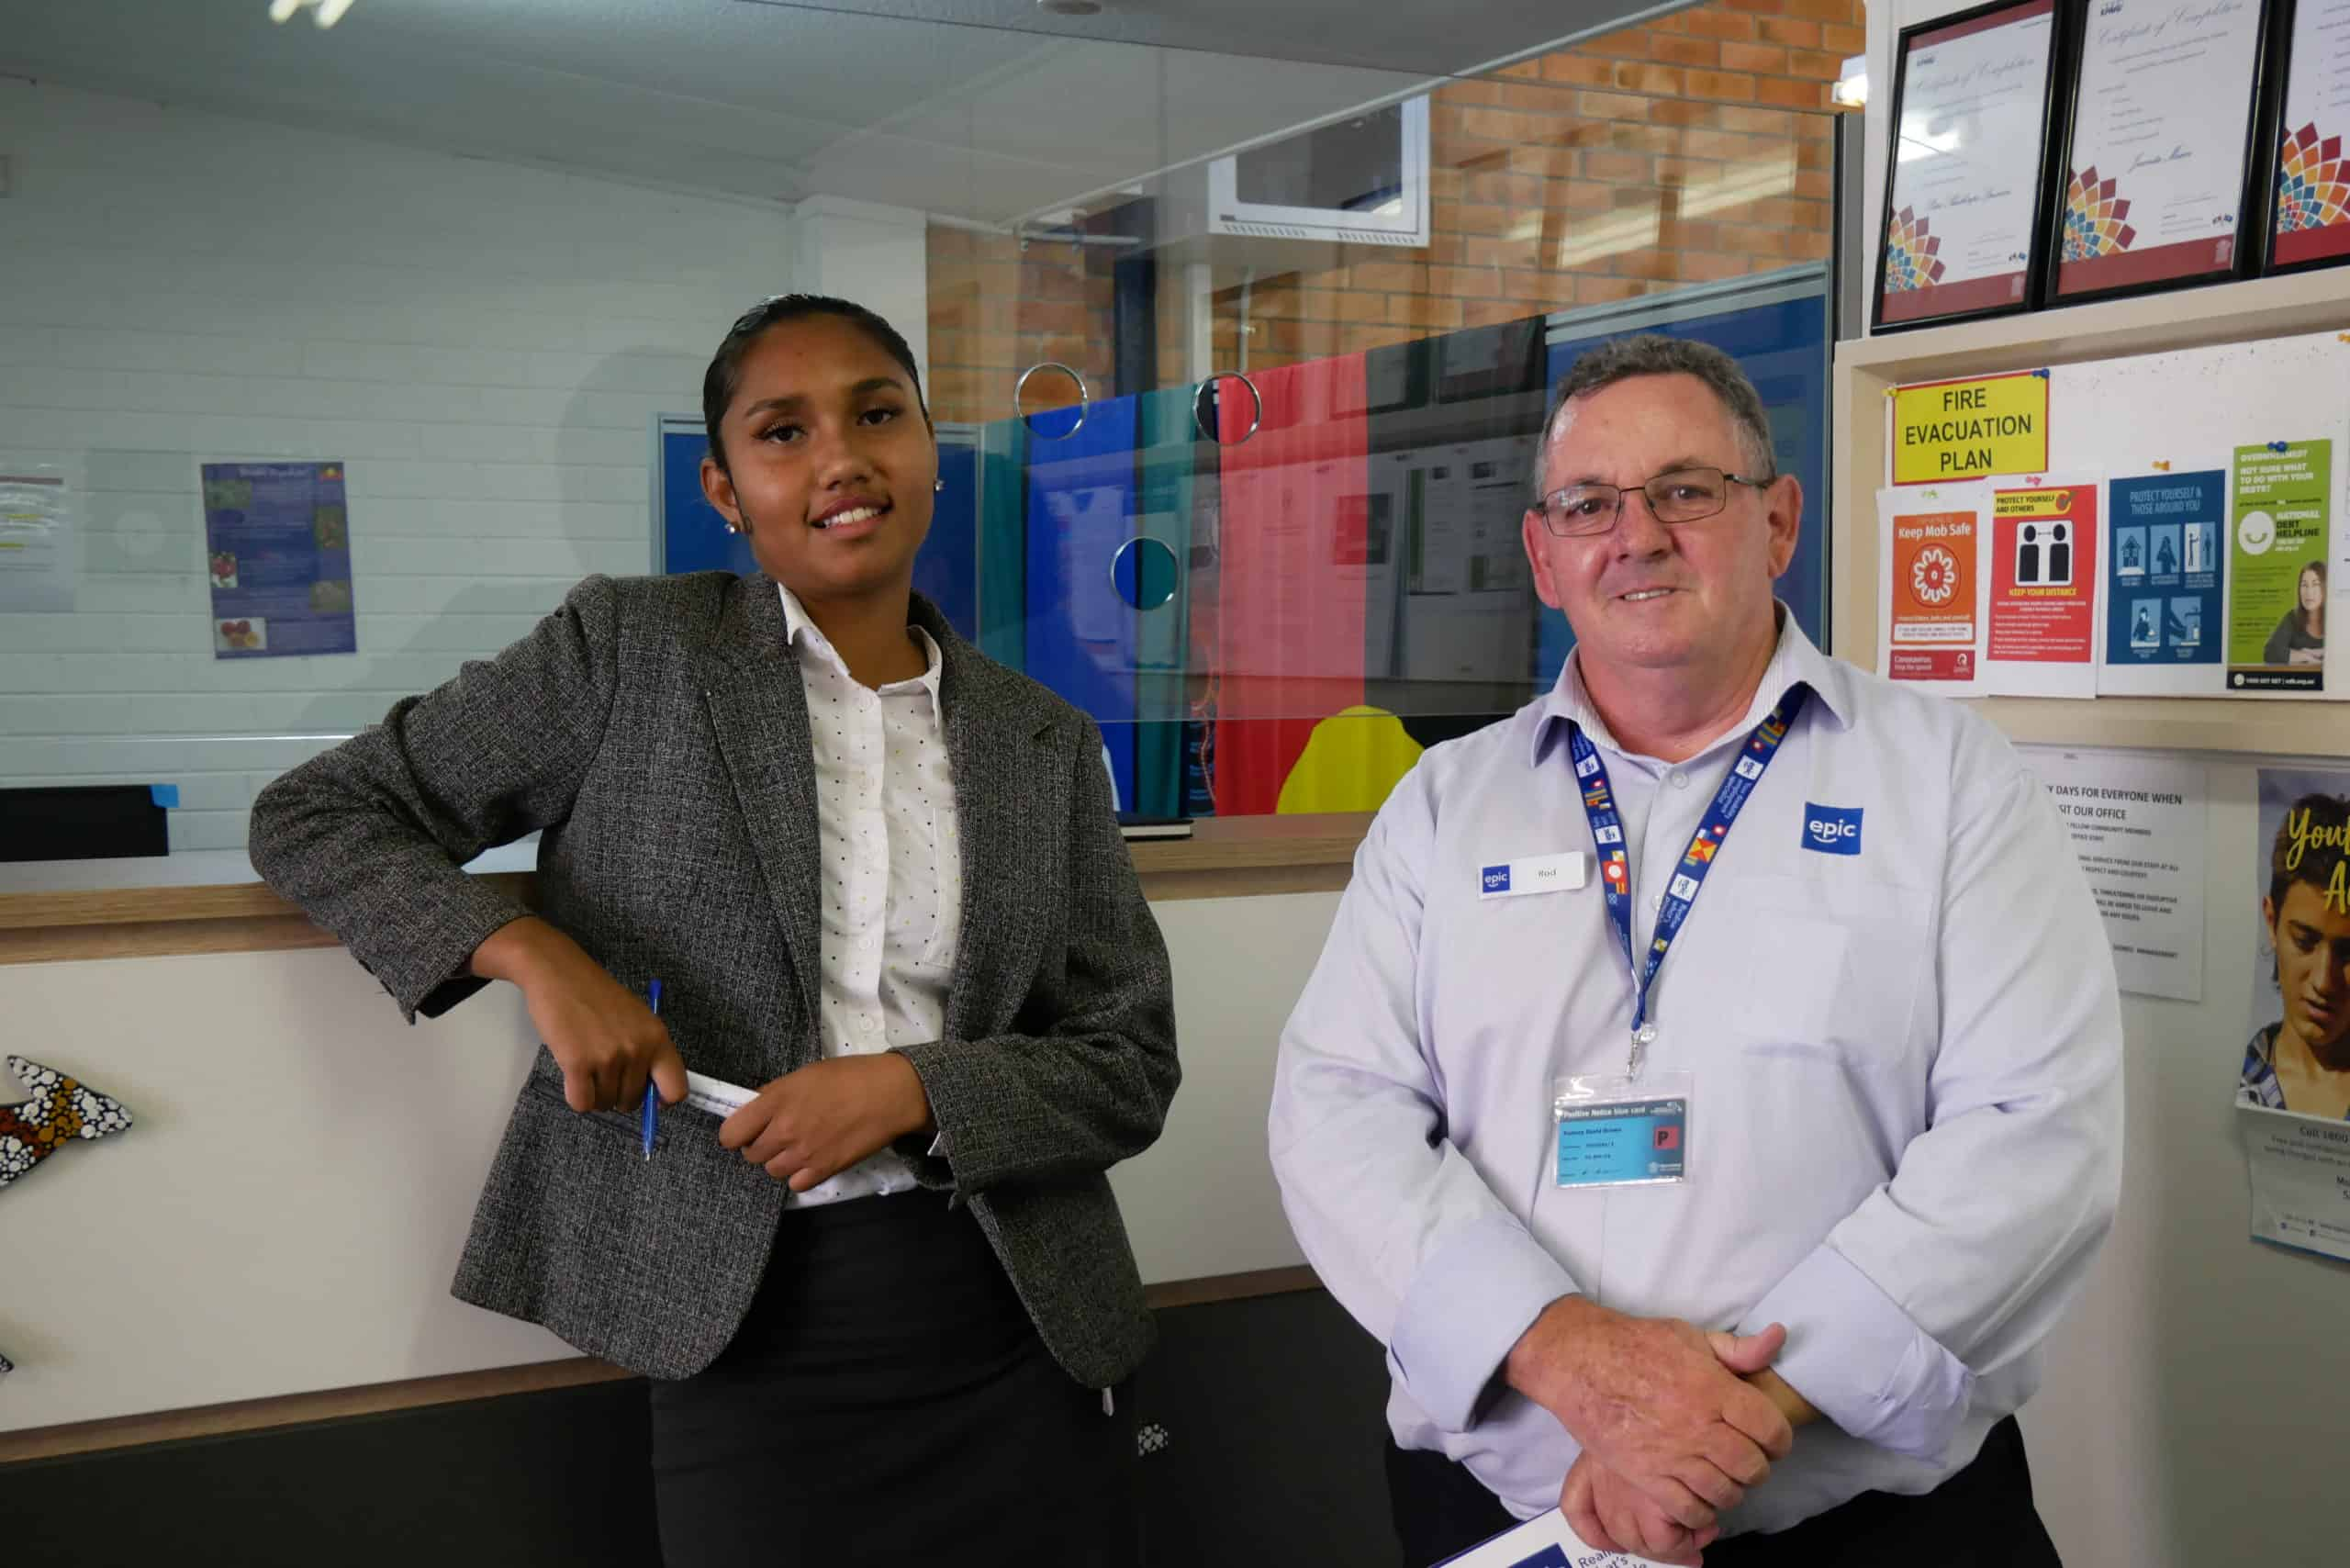 Sharnece, an indigenous young women dressed in business attire, stands next to Rod from EPIC Assist in the reception area of Kahwun-Wooga Aboriginal Coorporation in Maryborough